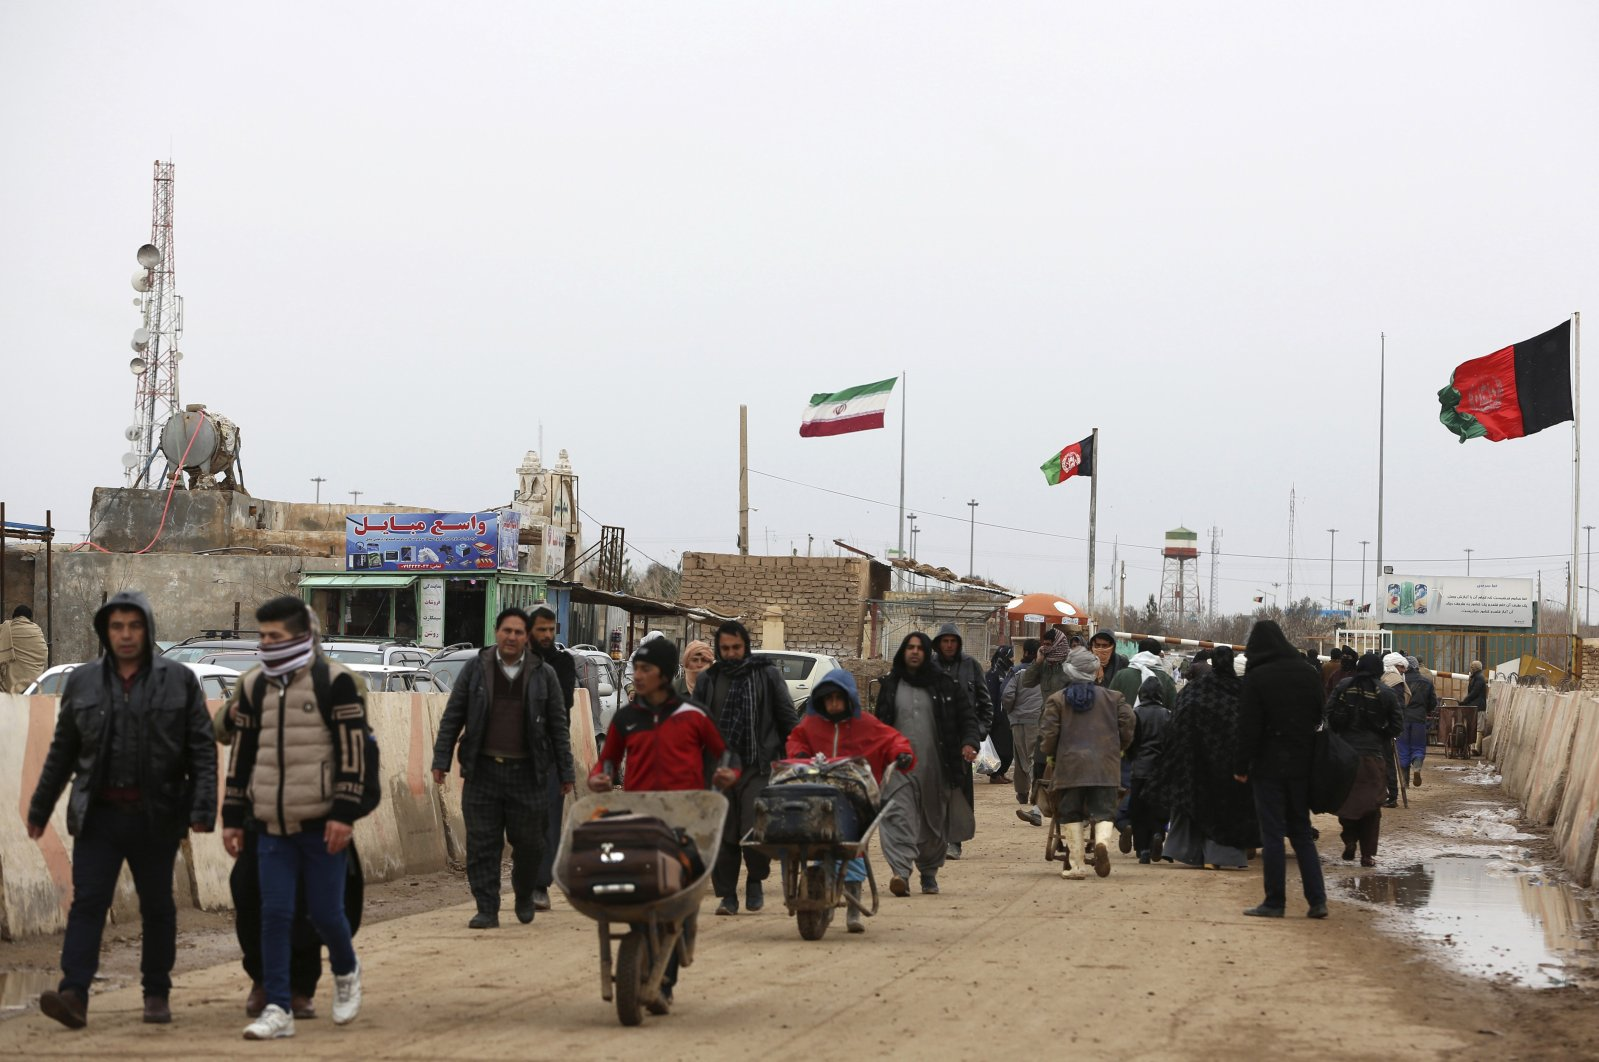 Afghans return to Afghanistan at the Islam Qala border with Iran, in the western Herat province, Afghanistan, Feb. 20, 2019. (AP Photo)